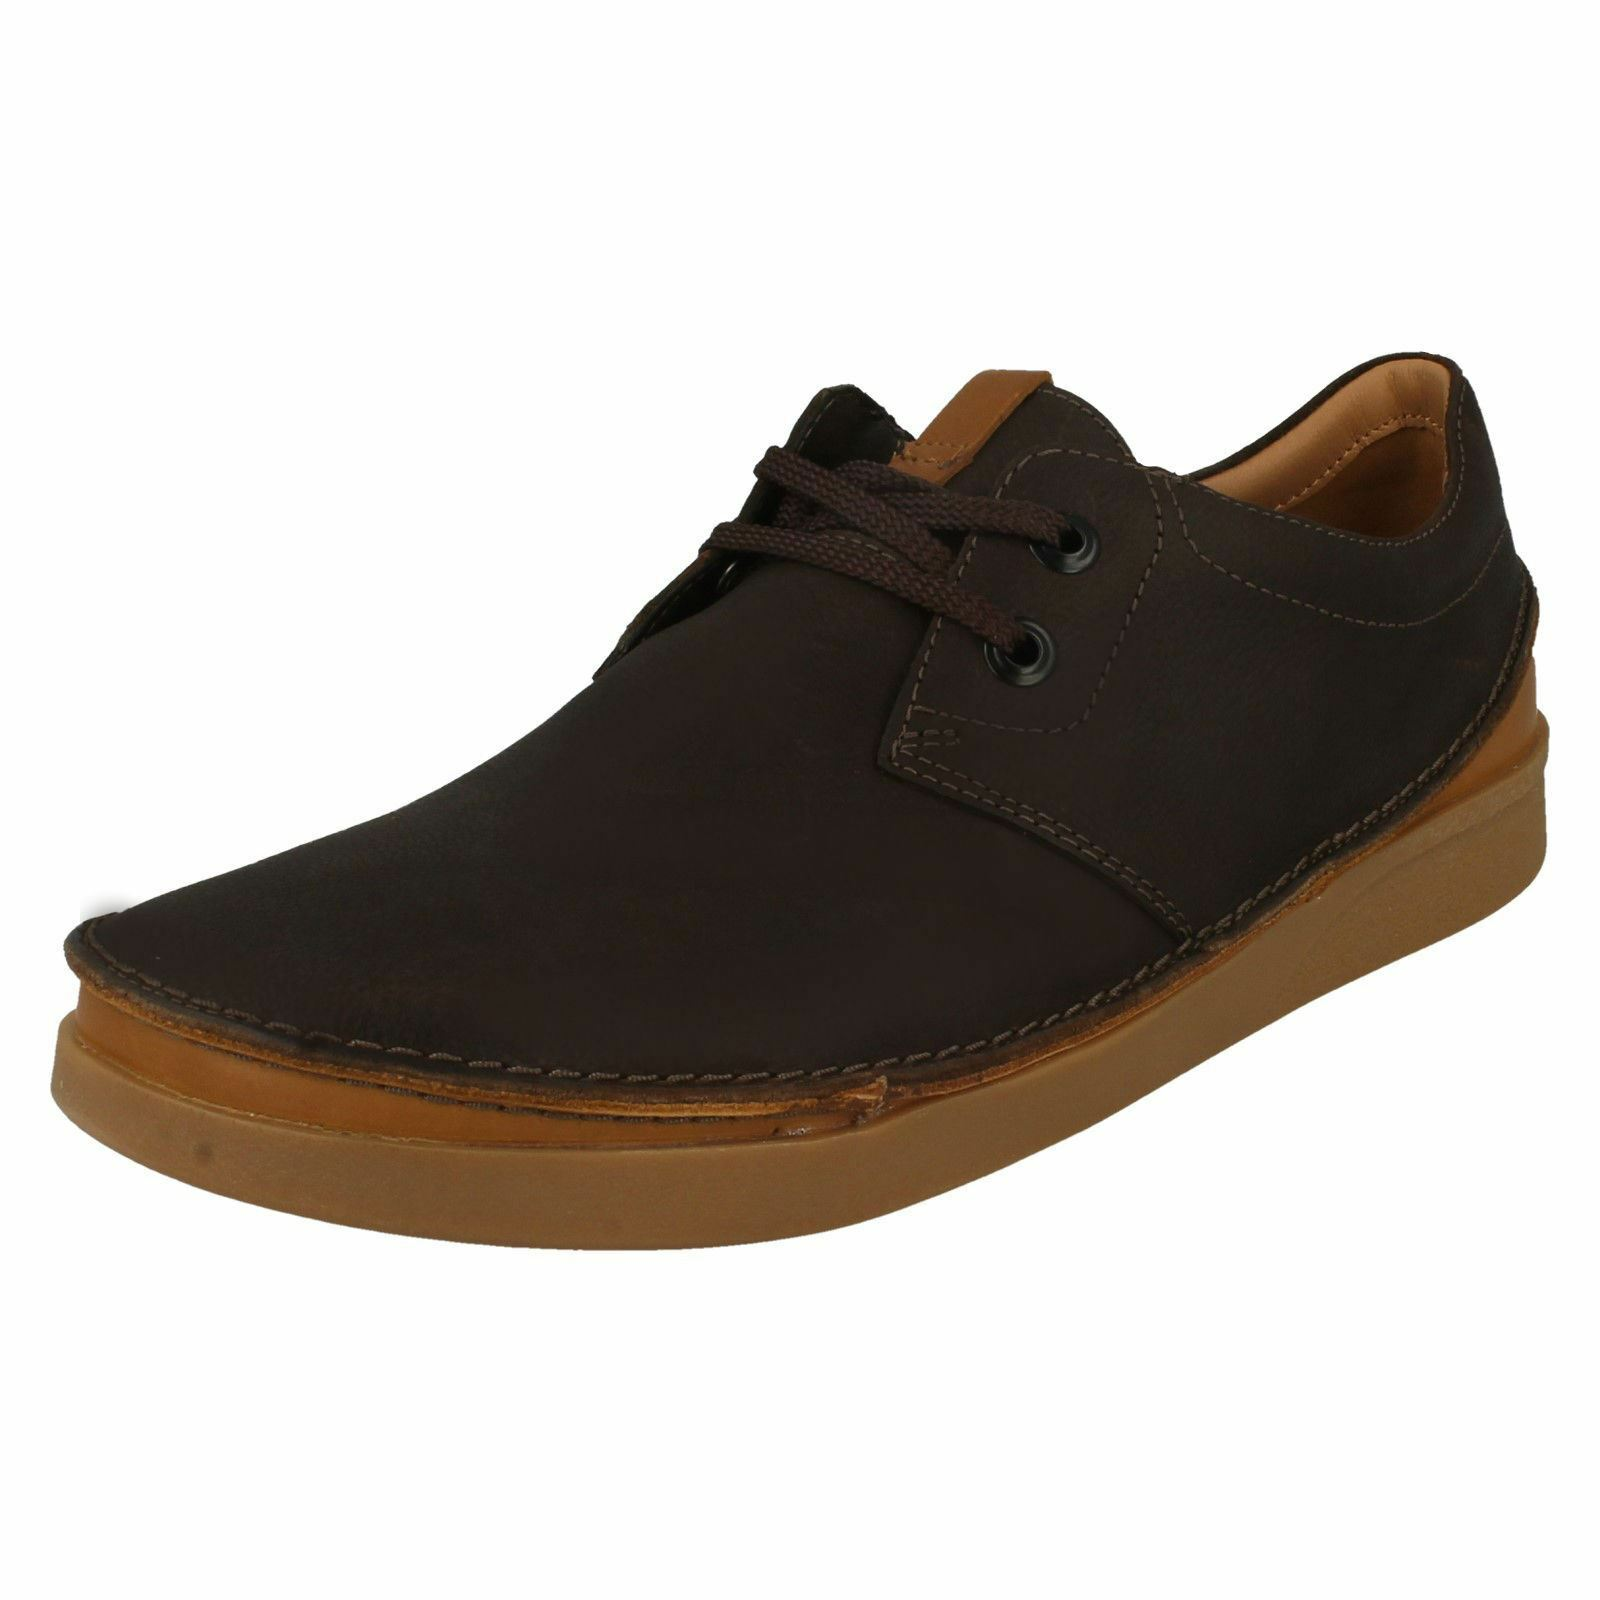 Mens Clarks Rounded Toe Casual Lace Up Leather shoes Oakland Lace